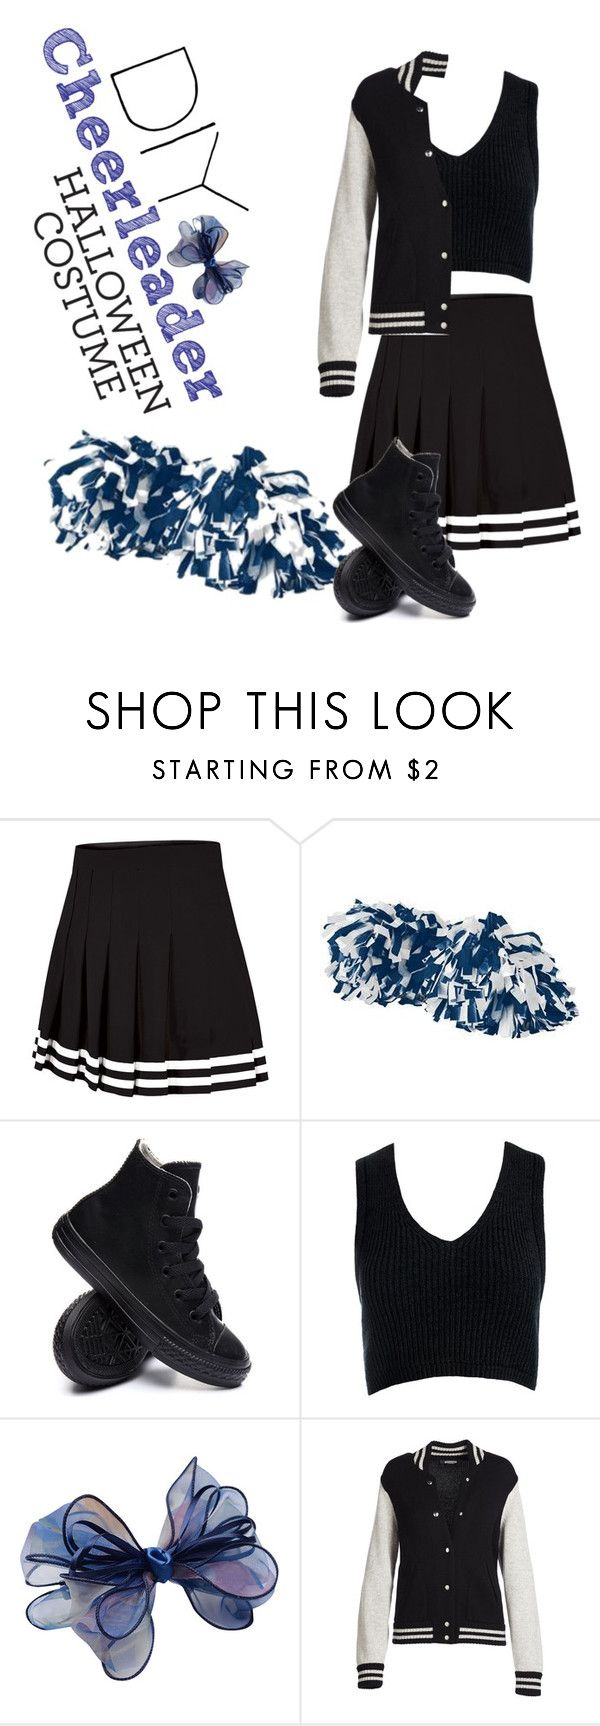 """DIY Cheerleader Halloween Costume"" by starspy ❤ liked on Polyvore featuring Augusta, Converse, Sans Souci, Chicnova Fashion, Marc Jacobs, cheerleader, halloweencostume and DIYHalloween"